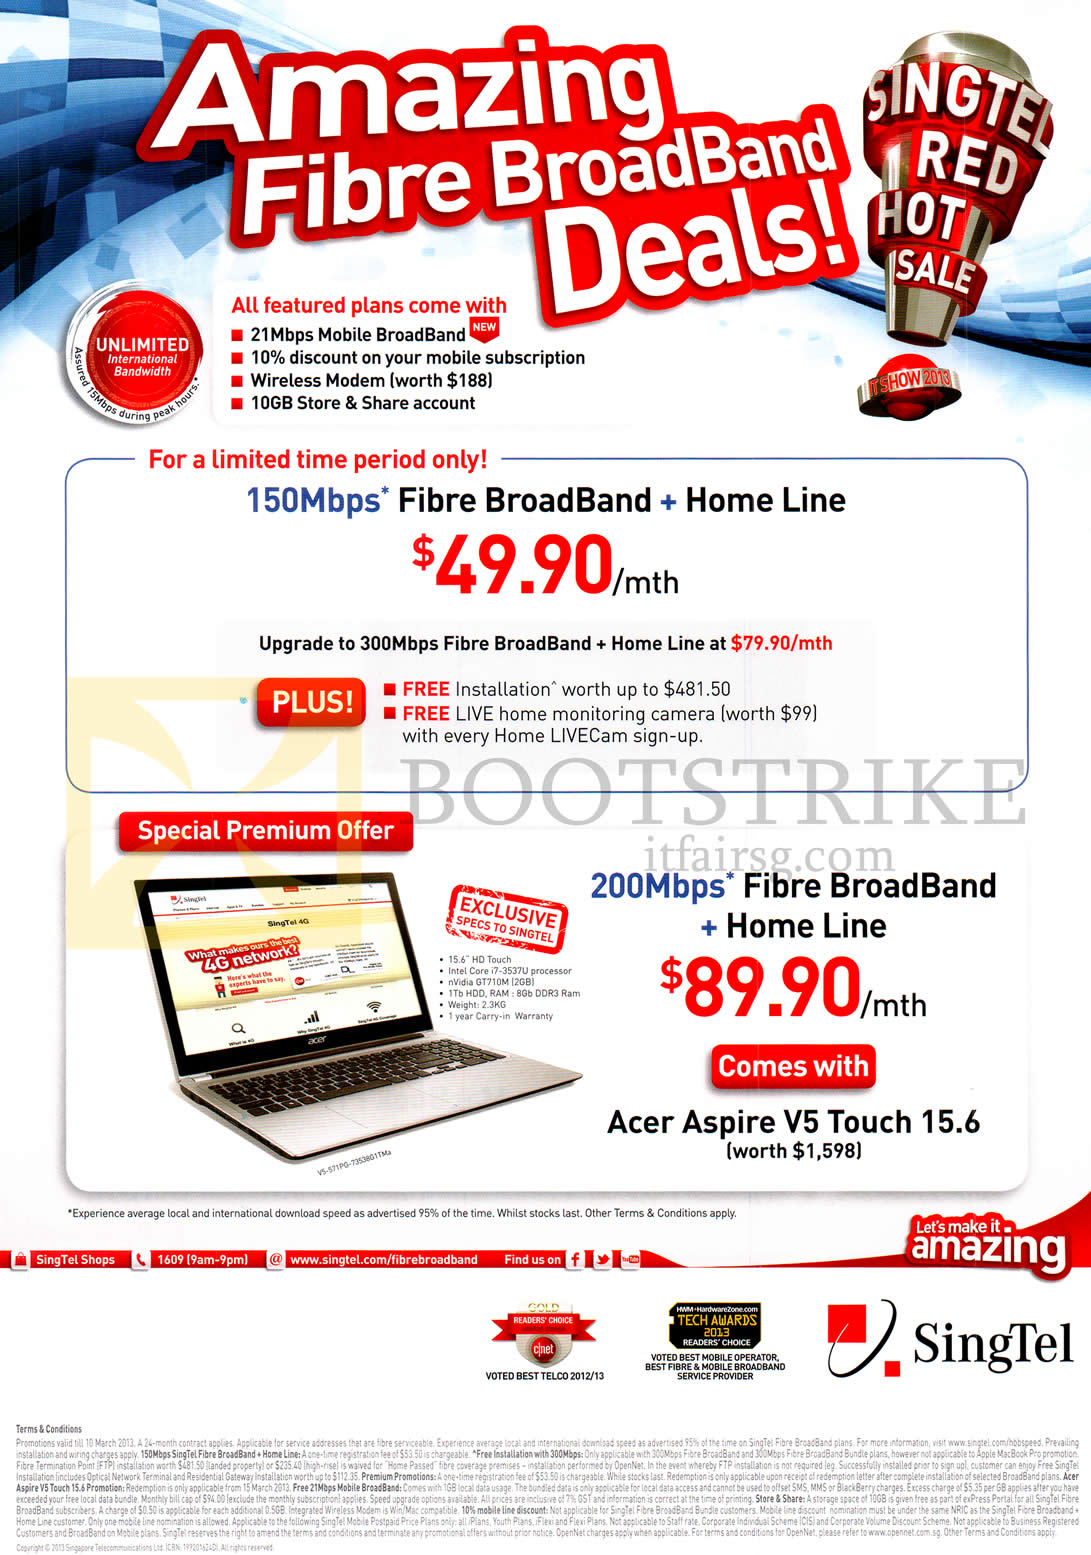 IT SHOW 2013 price list image brochure of Singtel Broadband Fibre 150Mbps, Fixed Line, 200Mbps Free Acer Aspire V5 Touch 15.6 Notebook